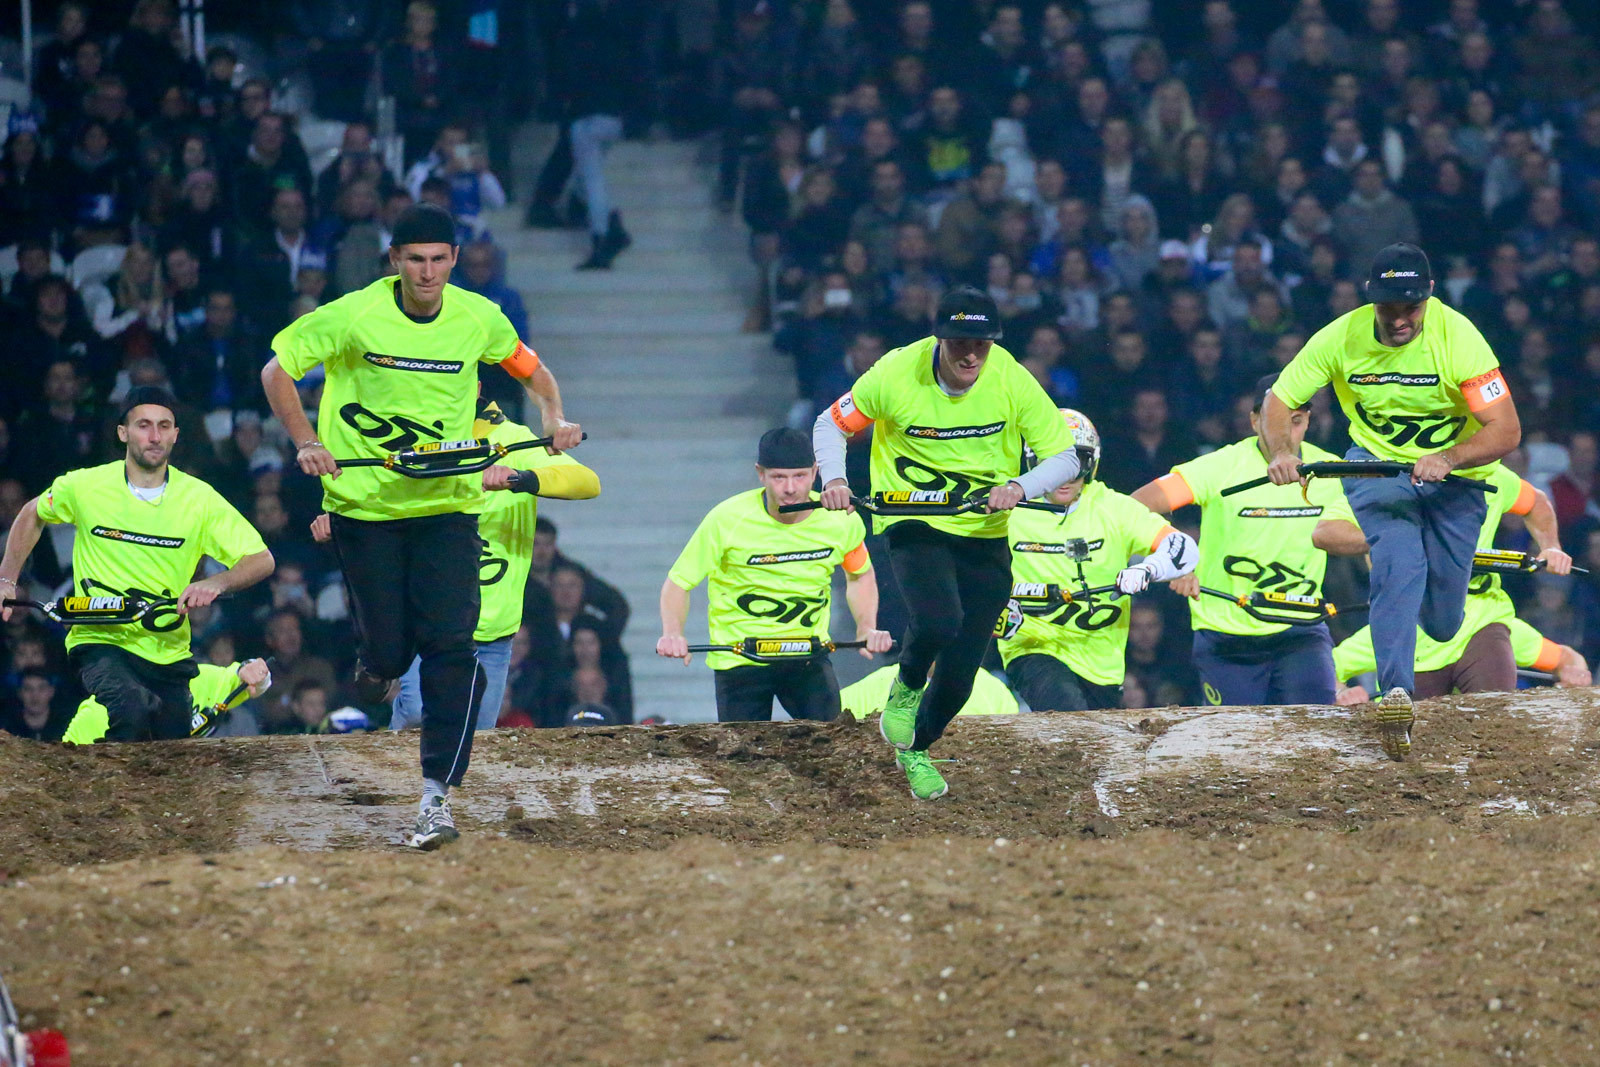 Pro Taper foot race - Photo Blast: Paris-Lille Supercross - Motocross Pictures - Vital MX